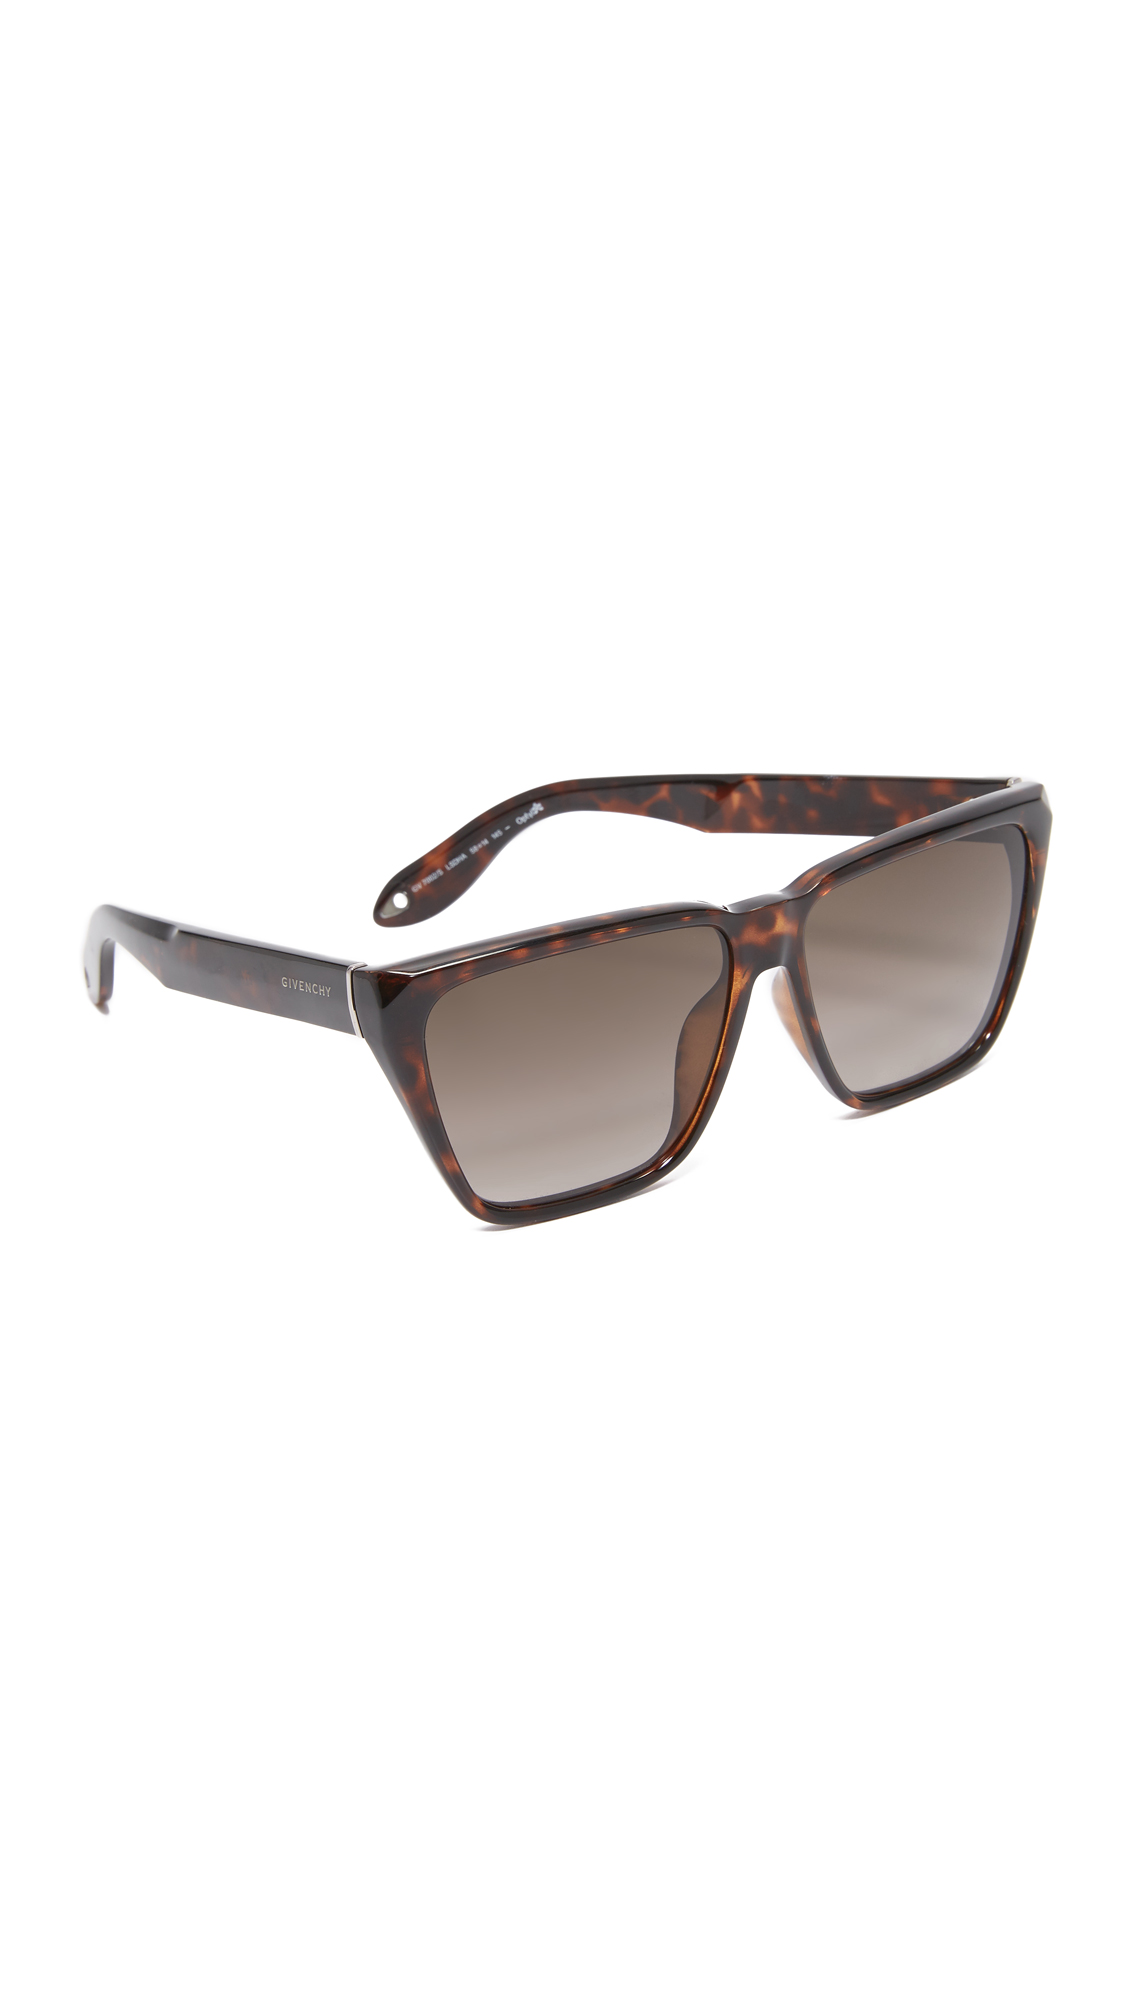 85d32542a02 Givenchy Flat Top Sunglasses